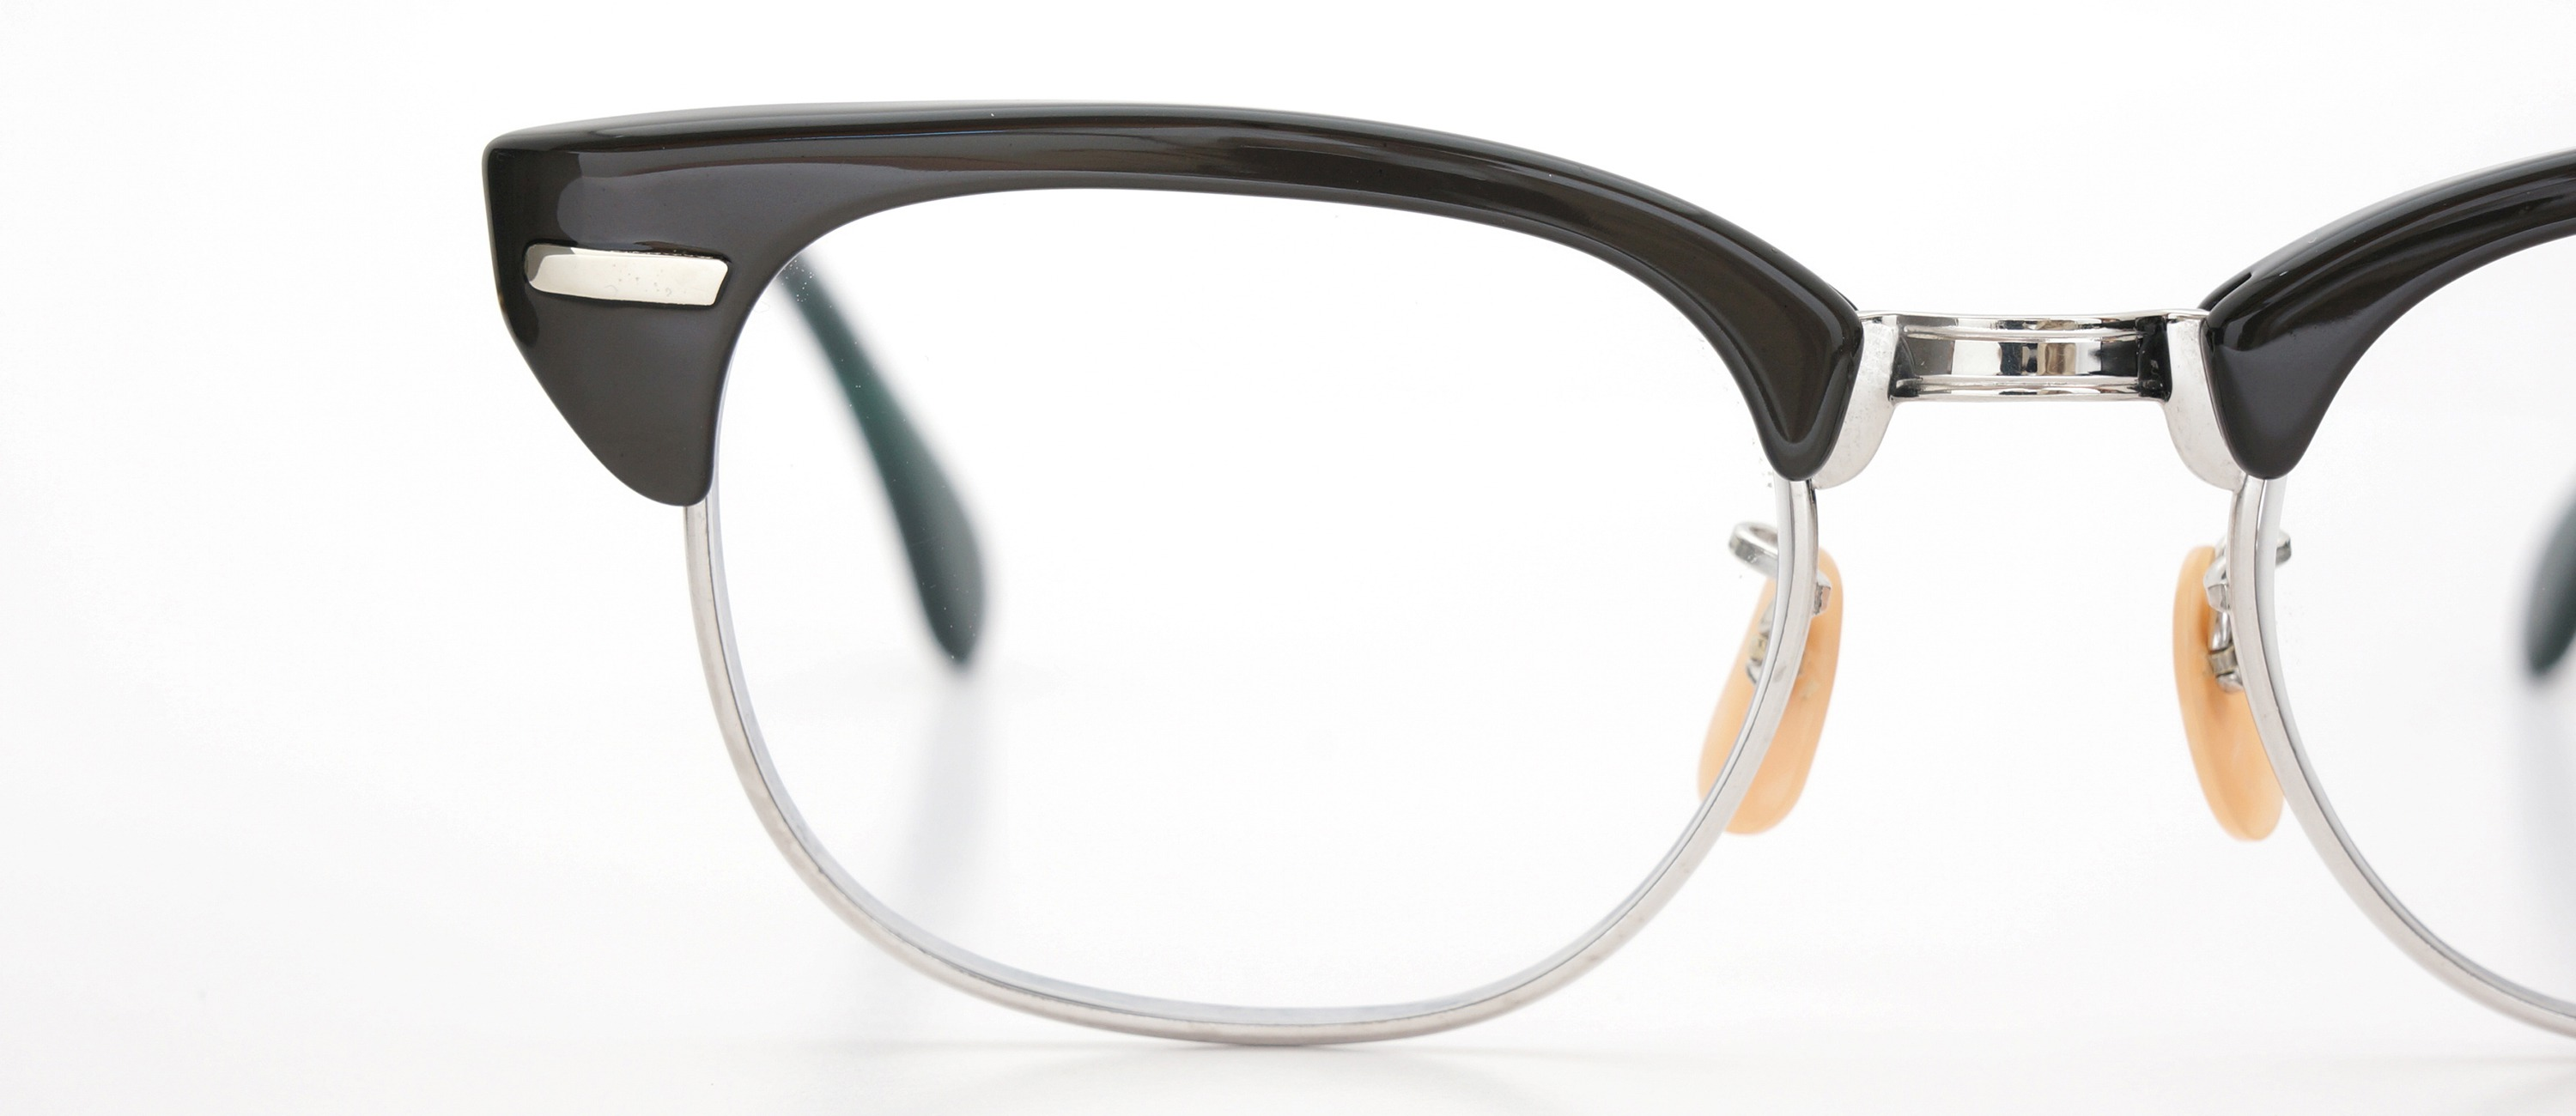 The Spectacle メガネ 1950s-60s Universal Combination UOC-600E Grey-Stripe WG 48-20 イメージ17